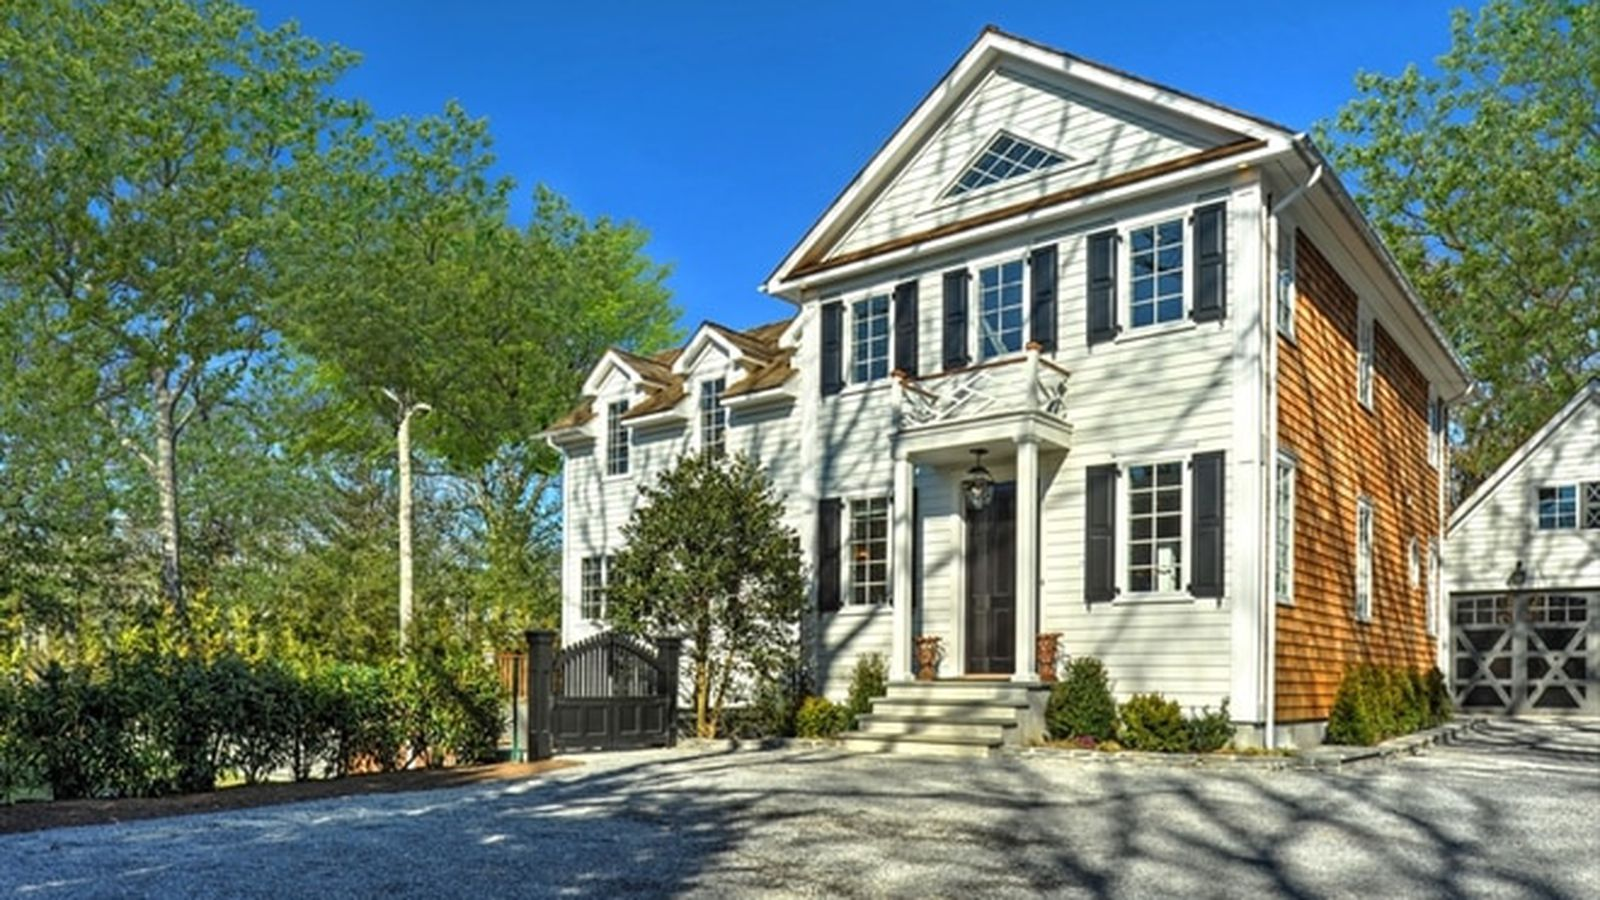 singles in east hampton Search for luxury real estate in east hampton with sotheby's international realty view our exclusive listings of east hampton homes and connect with an agent today.